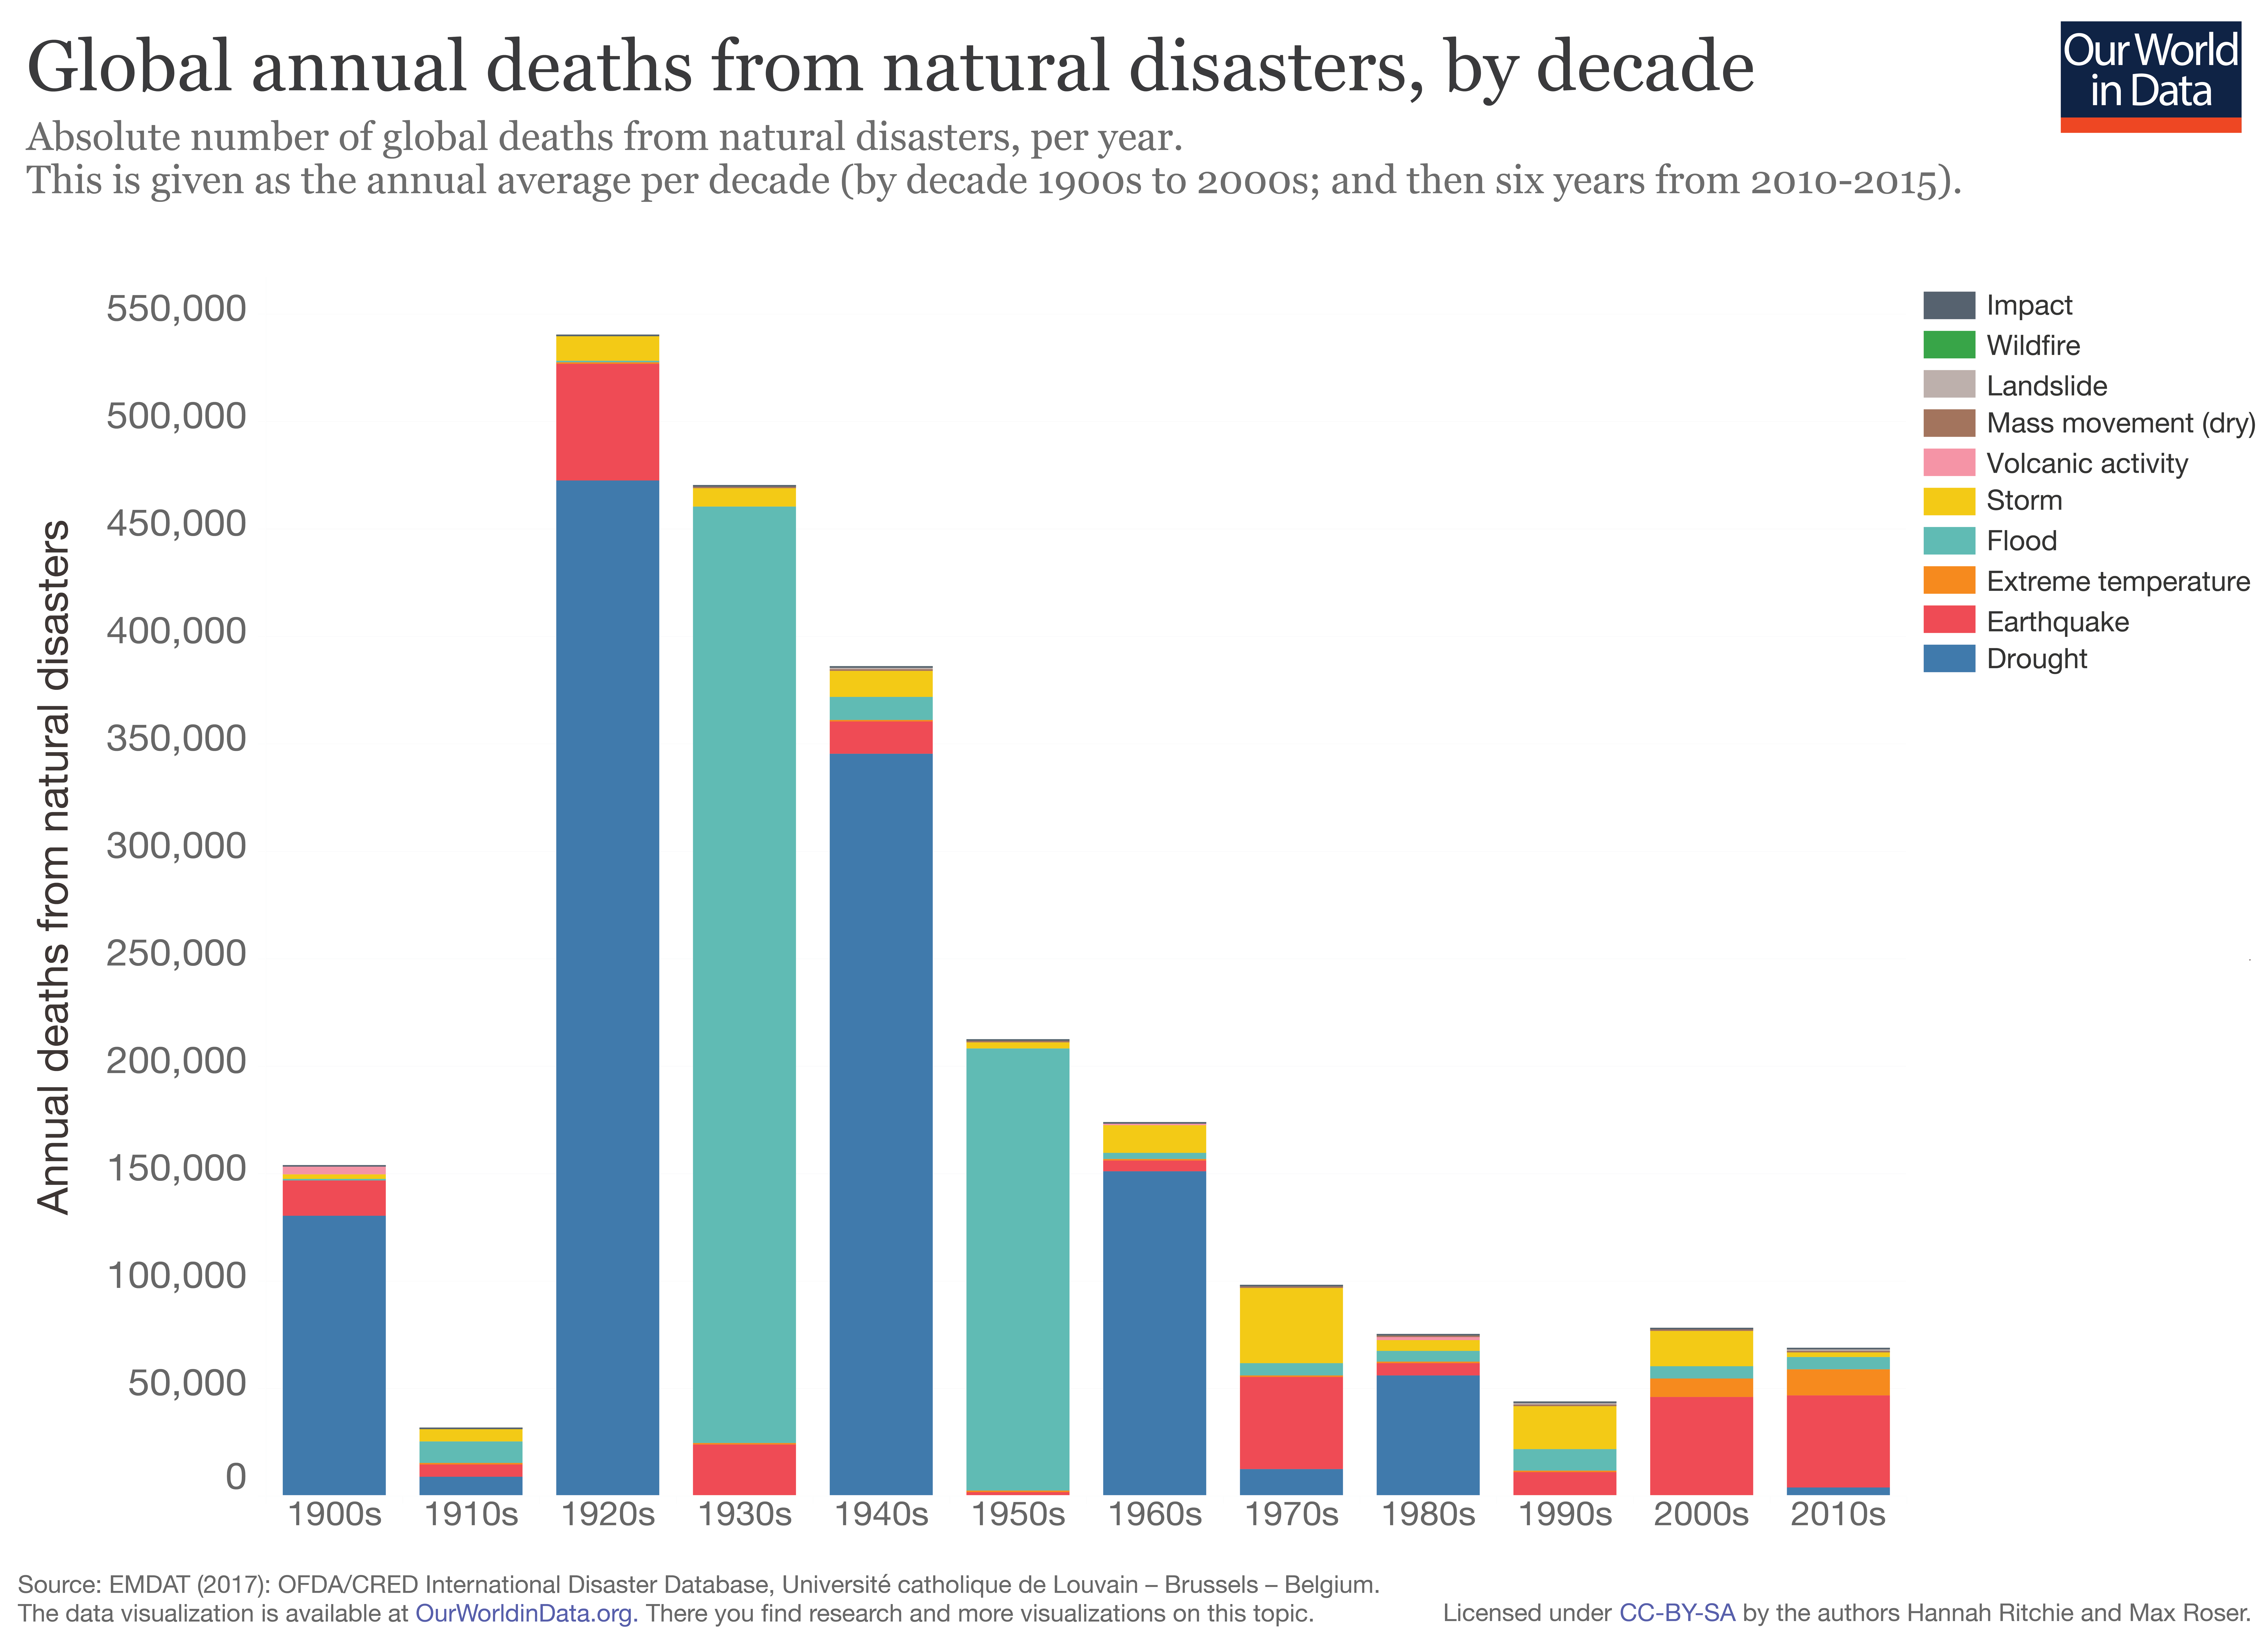 Global annual absolute deaths from natural disasters 01